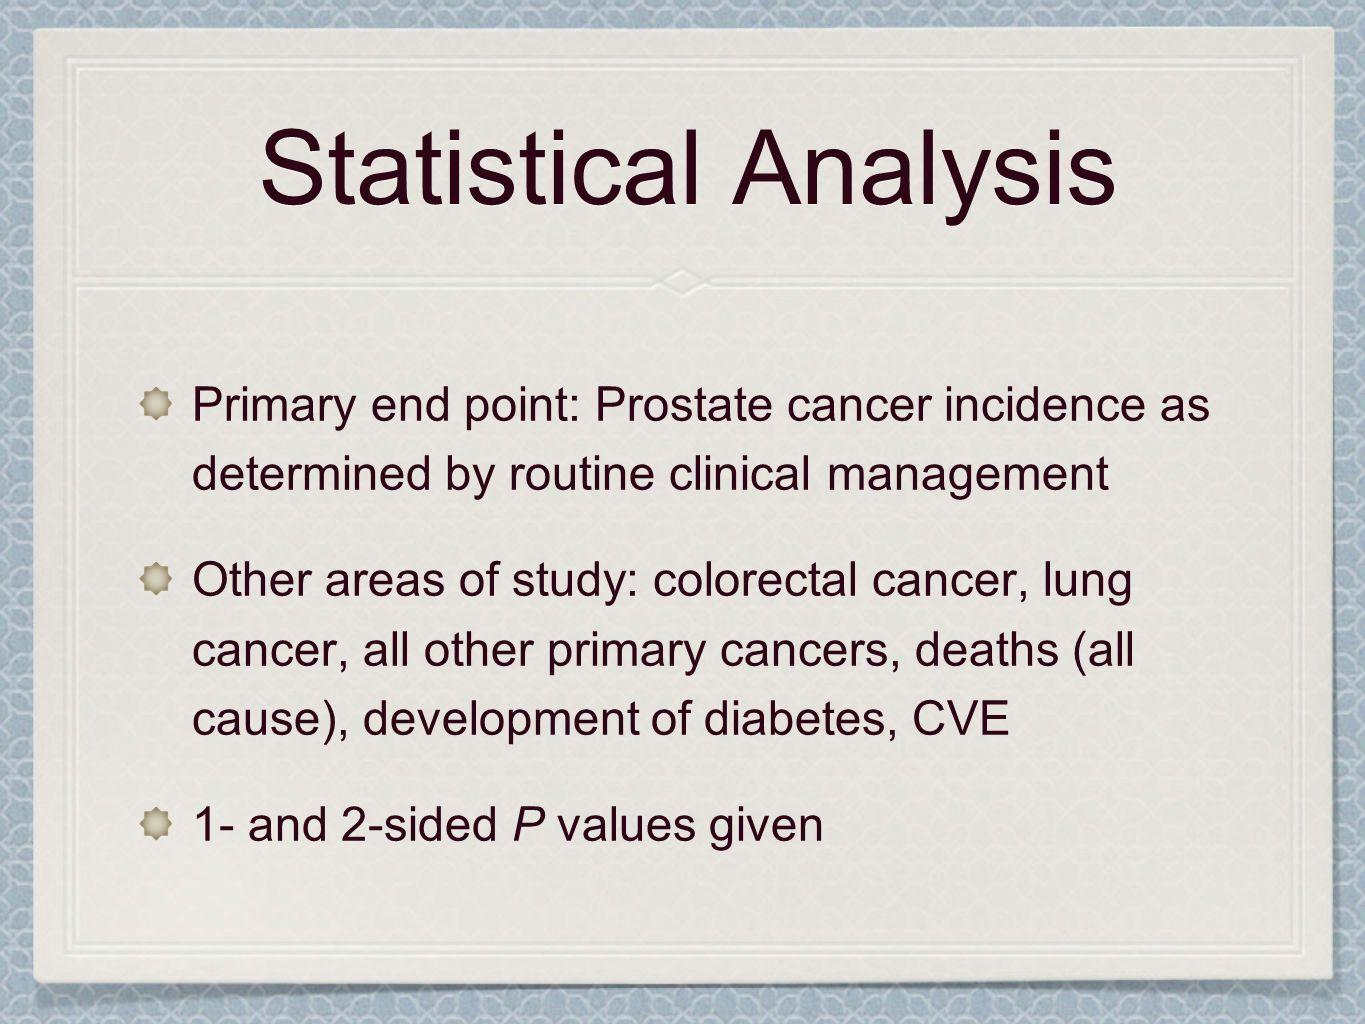 Statistical Analysis Primary end point: Prostate cancer incidence as determined by routine clinical management.